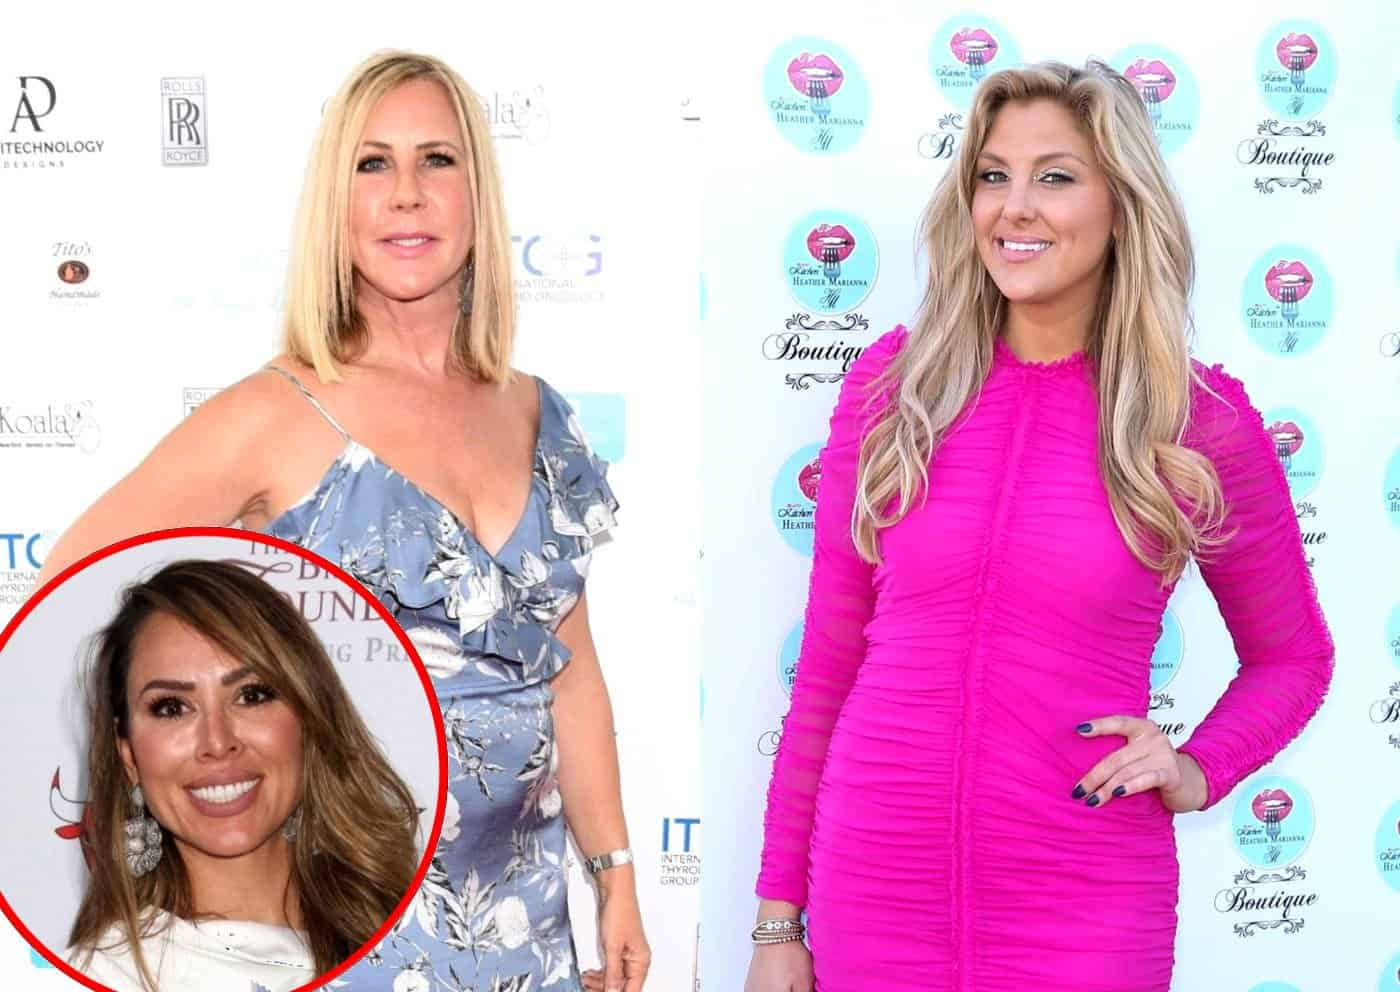 PHOTO: RHOC Star Gina Kirschenheiter Defends Train 'Joke' About Vicki Gunvalson After Backlash From Some Fans as Kelly Dodd Reacts